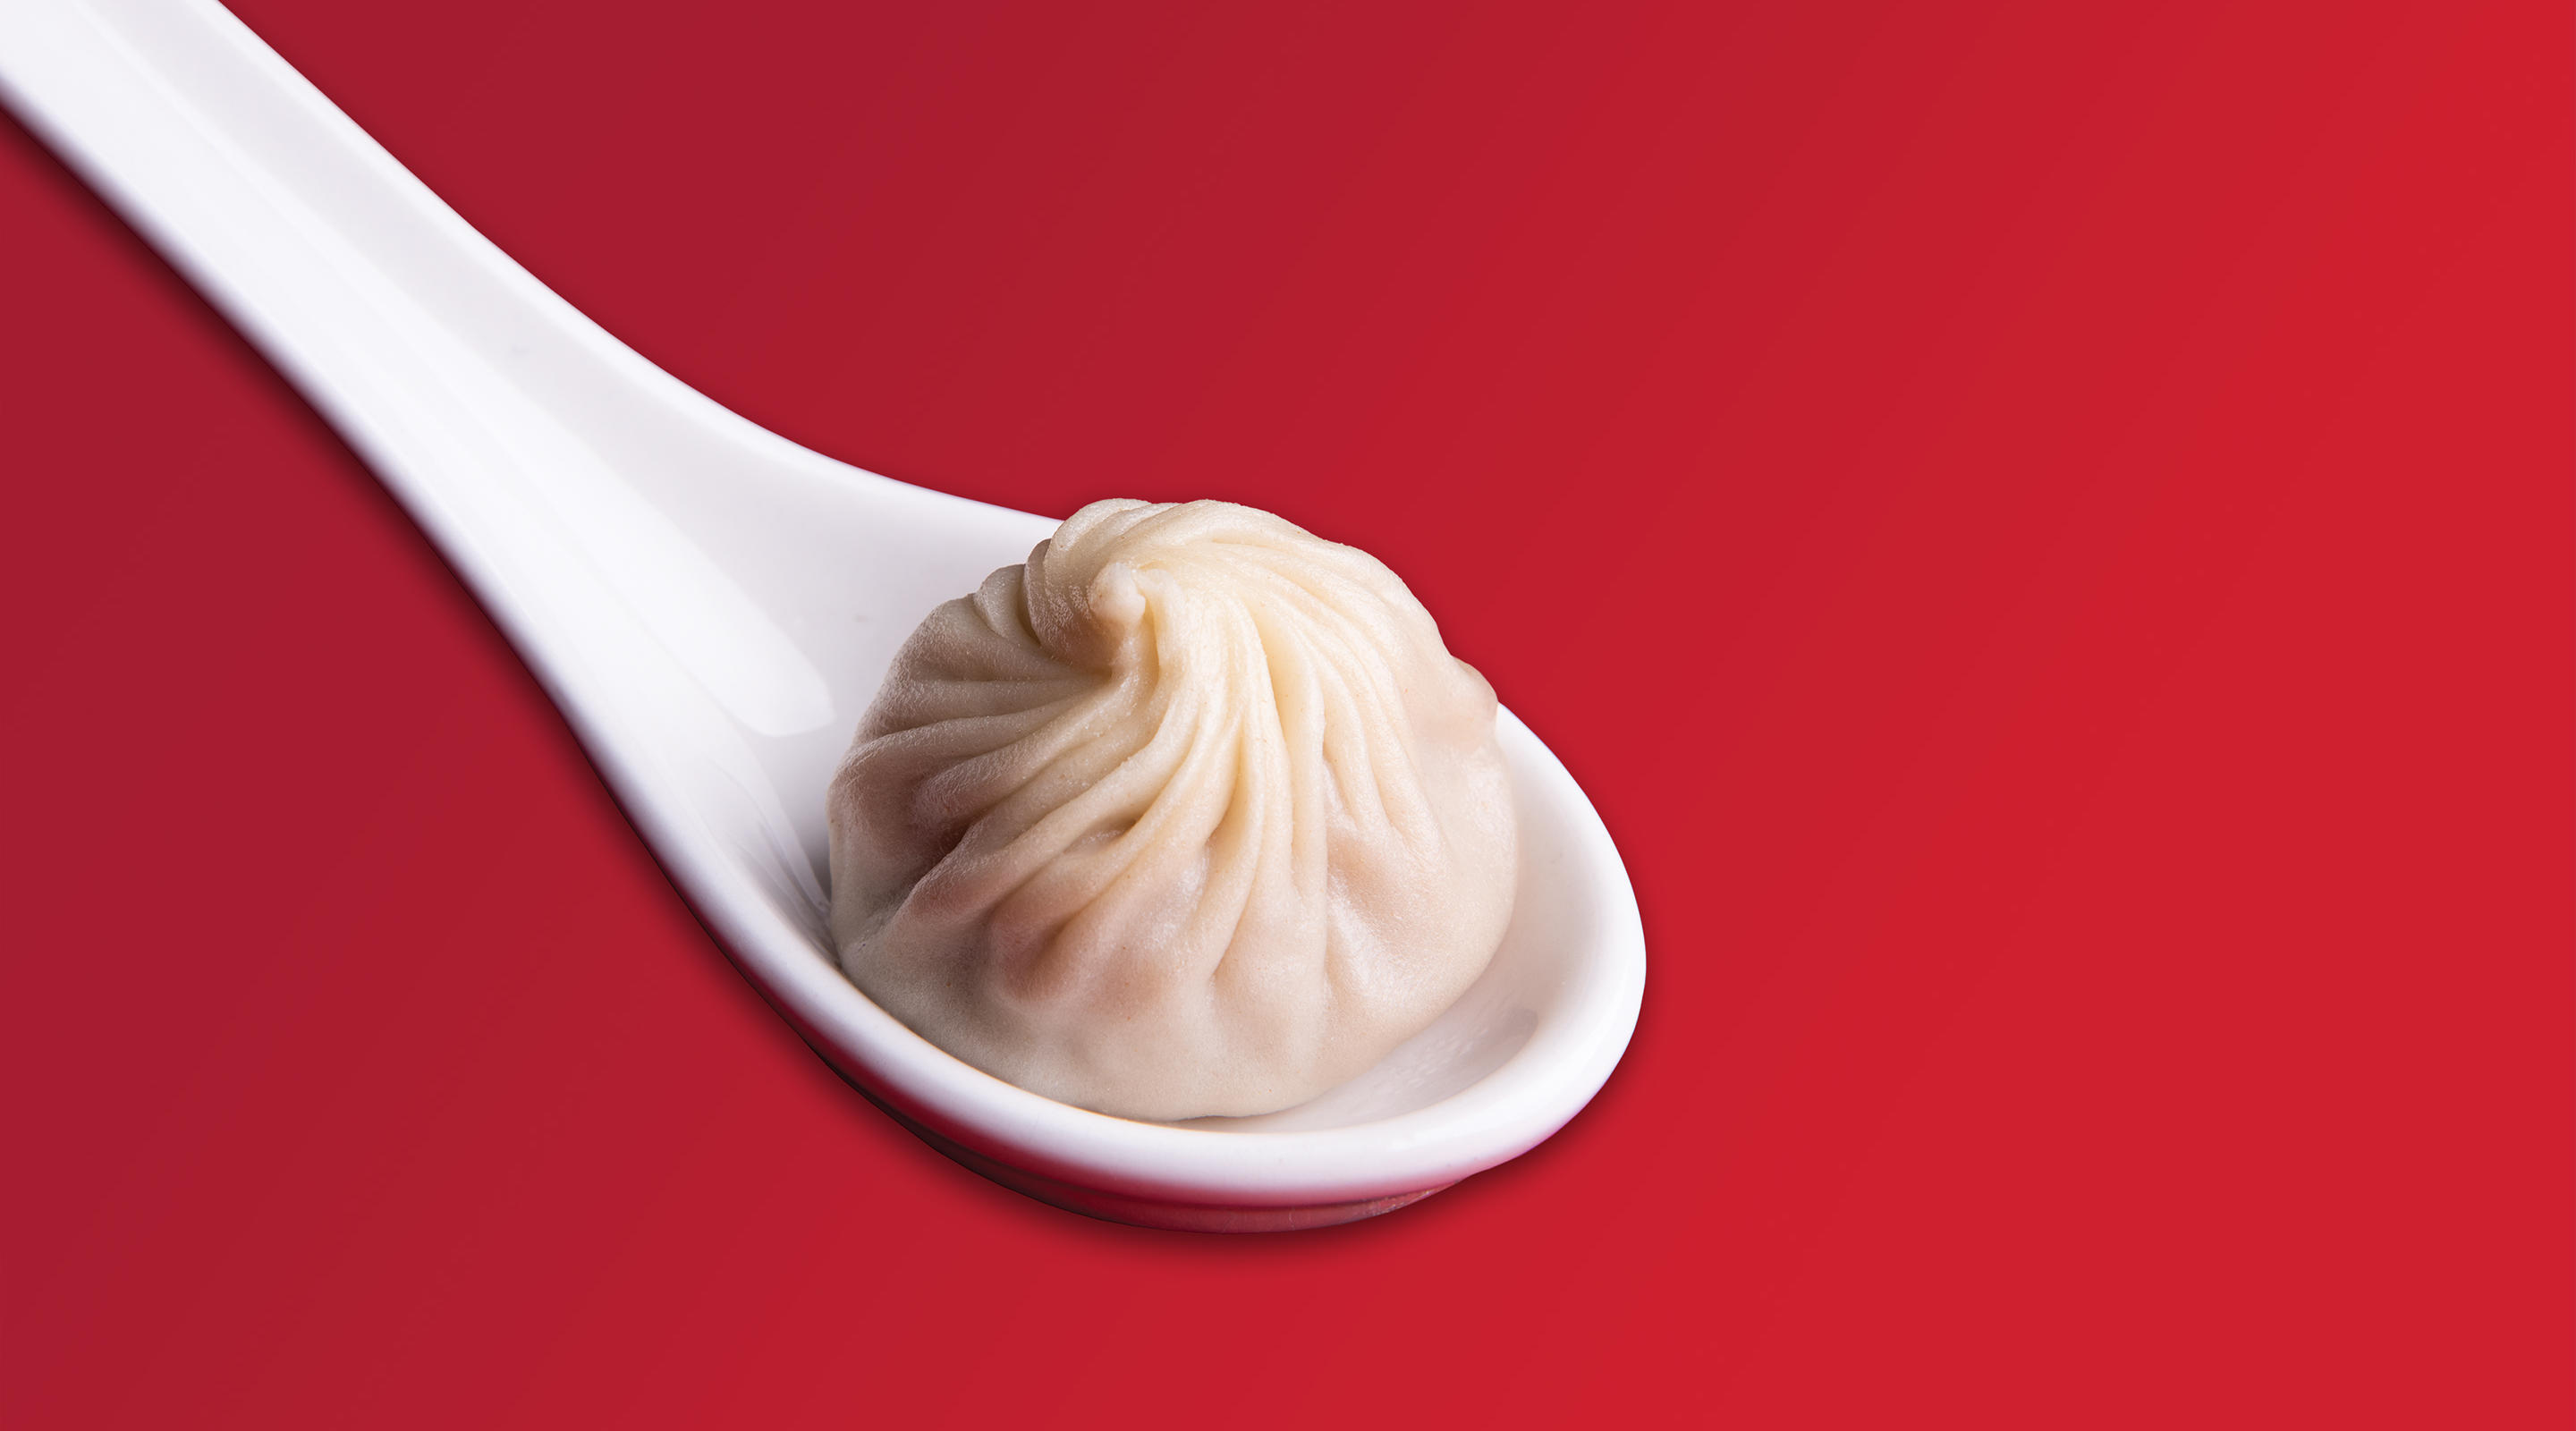 A Xiao Long Bao from Din Tai Fung at ARIA.